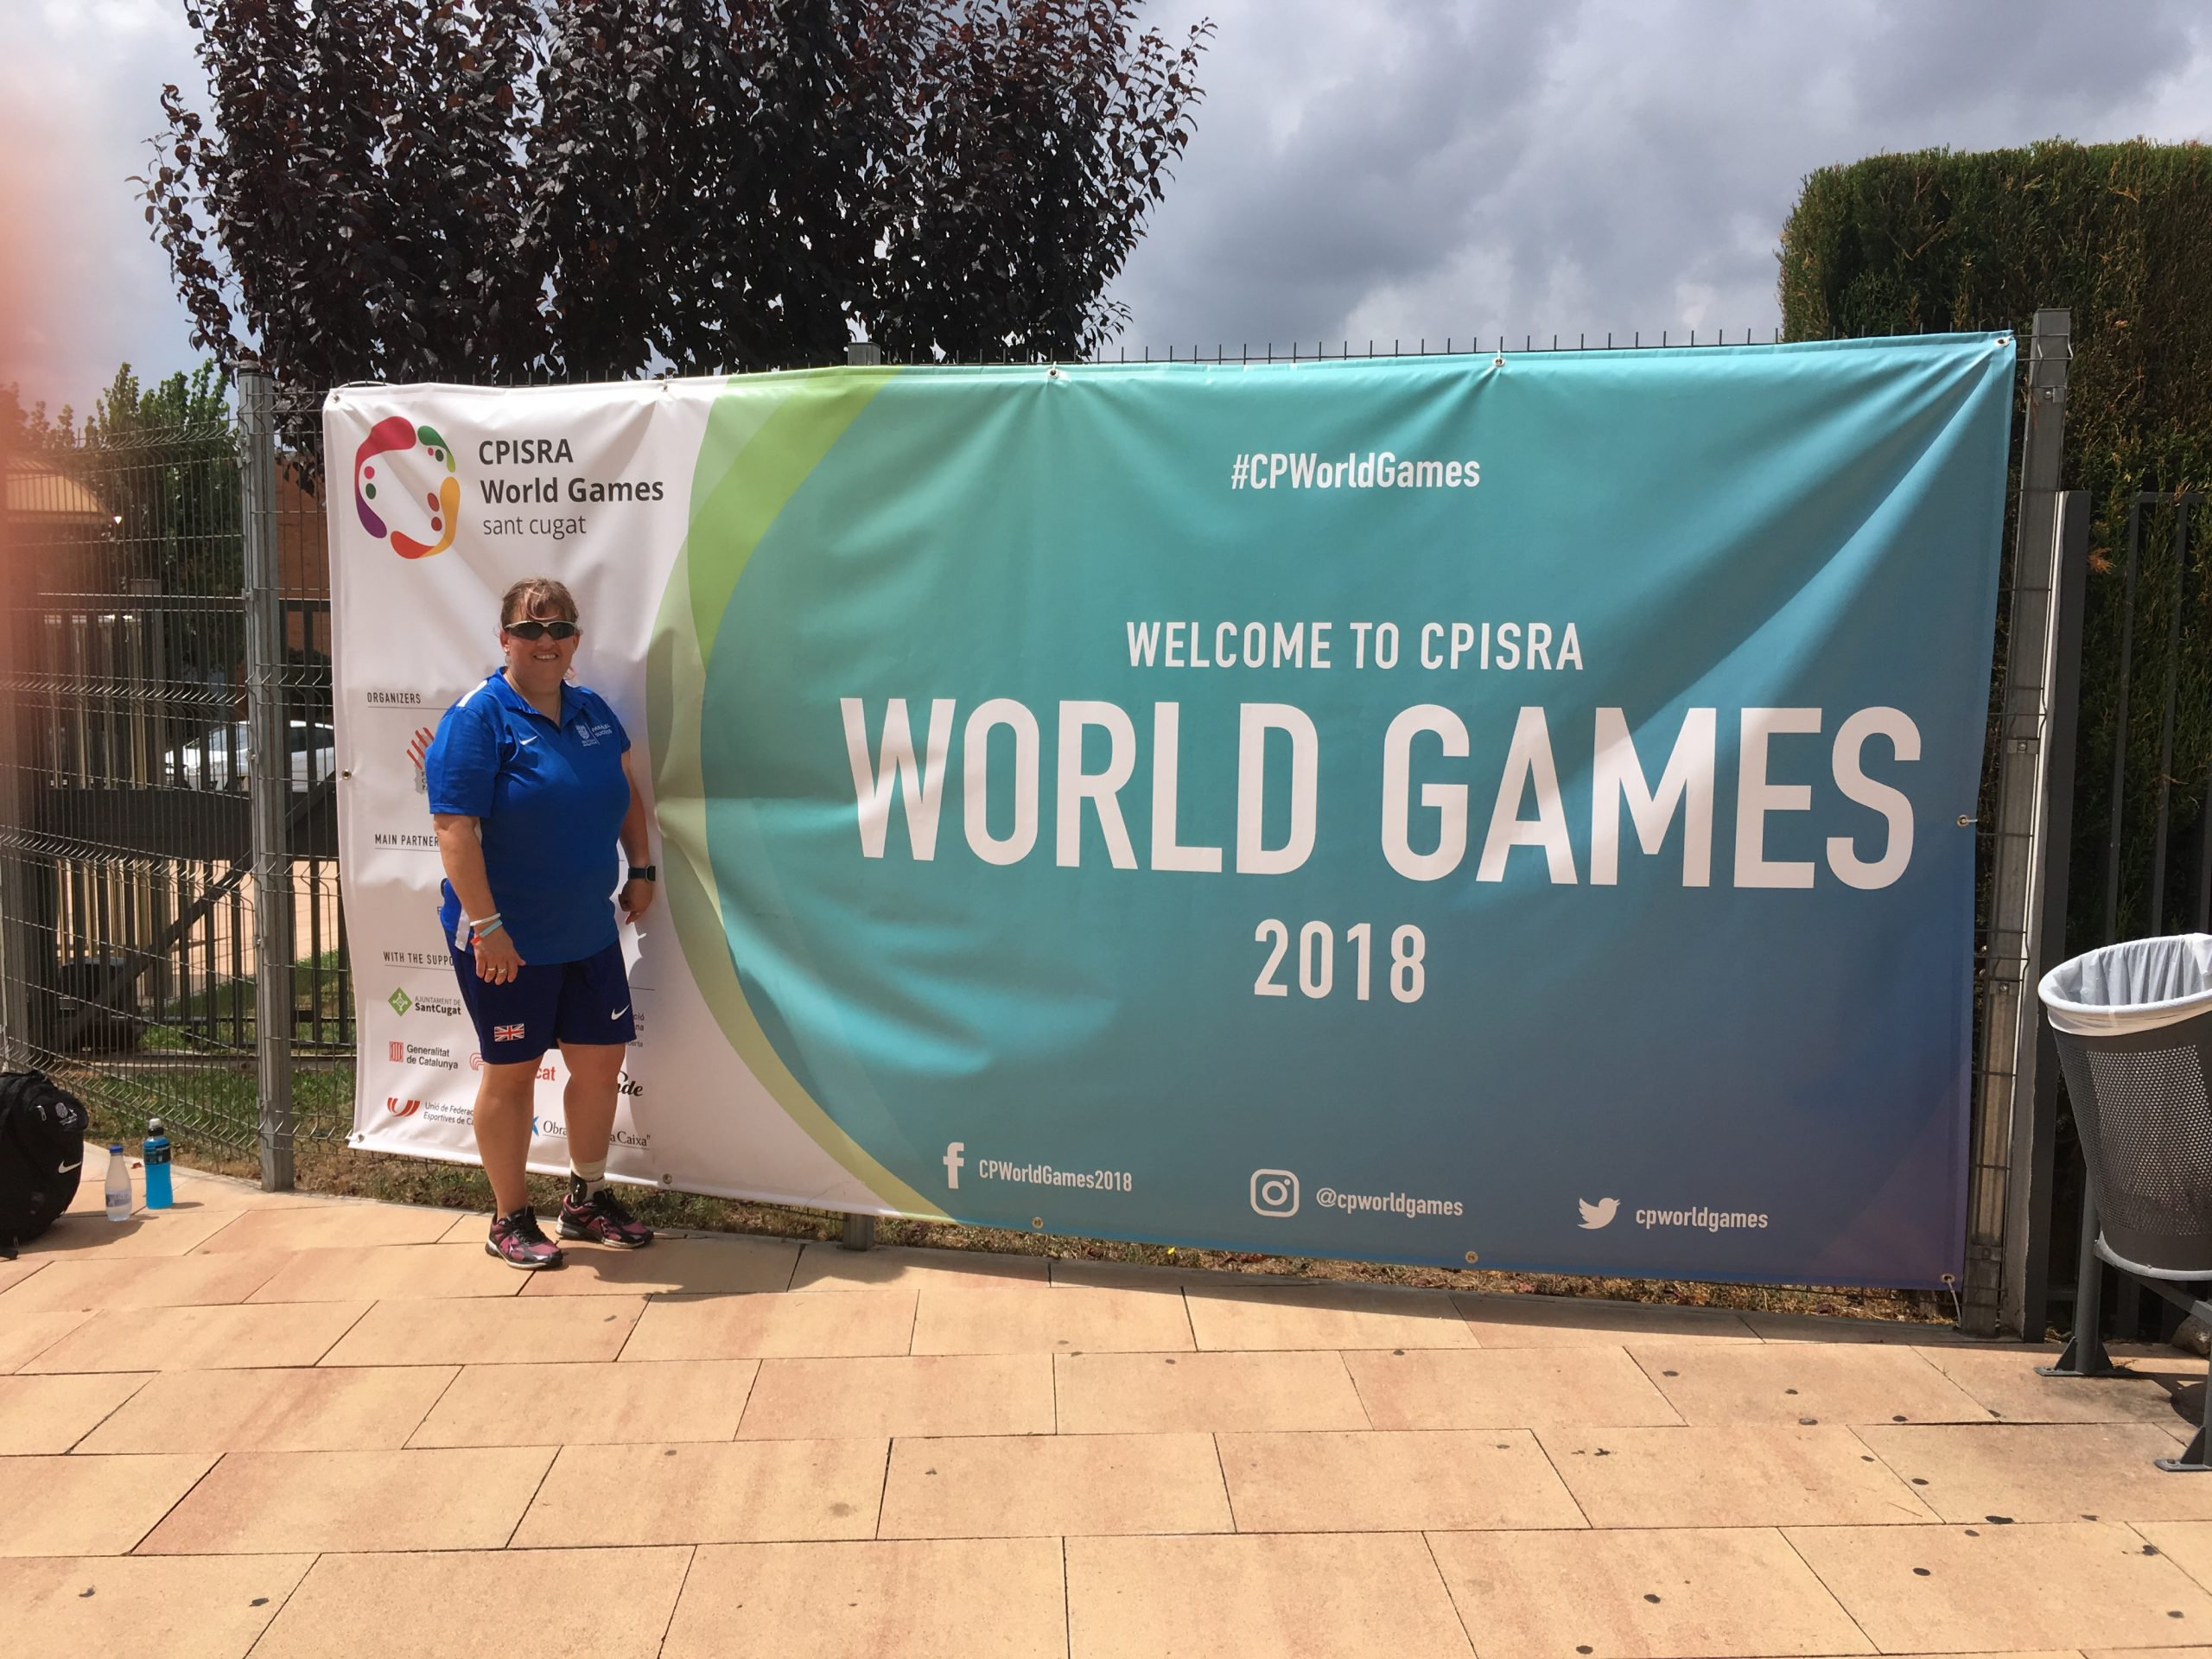 Claire stood infront of a the CPISRA world Games banner